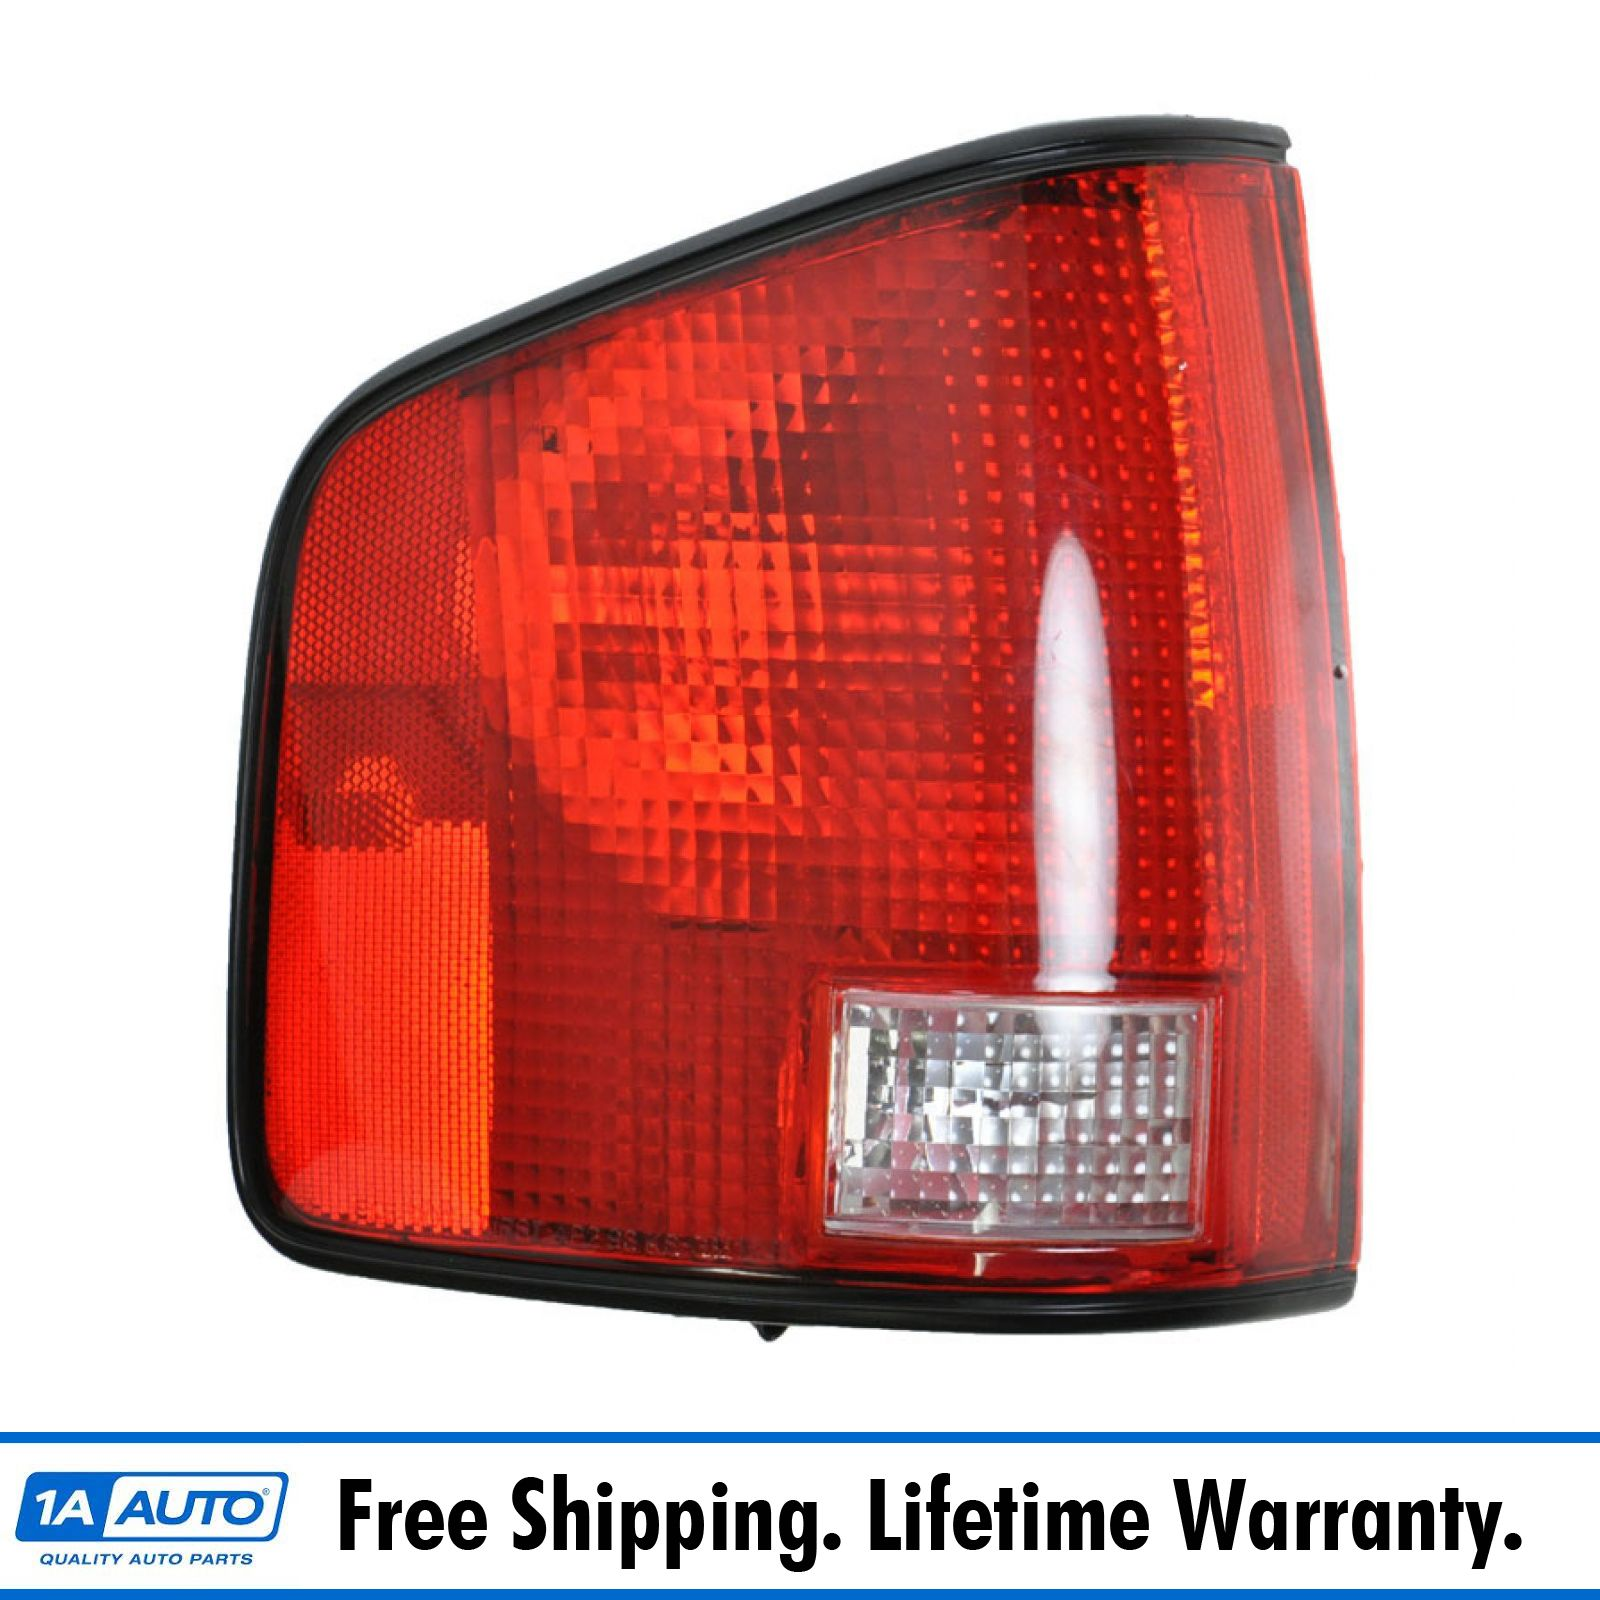 Taillight Taillamp LH Left Driver Side for 94-04 Hombre S10 Sonoma Pickup Truck